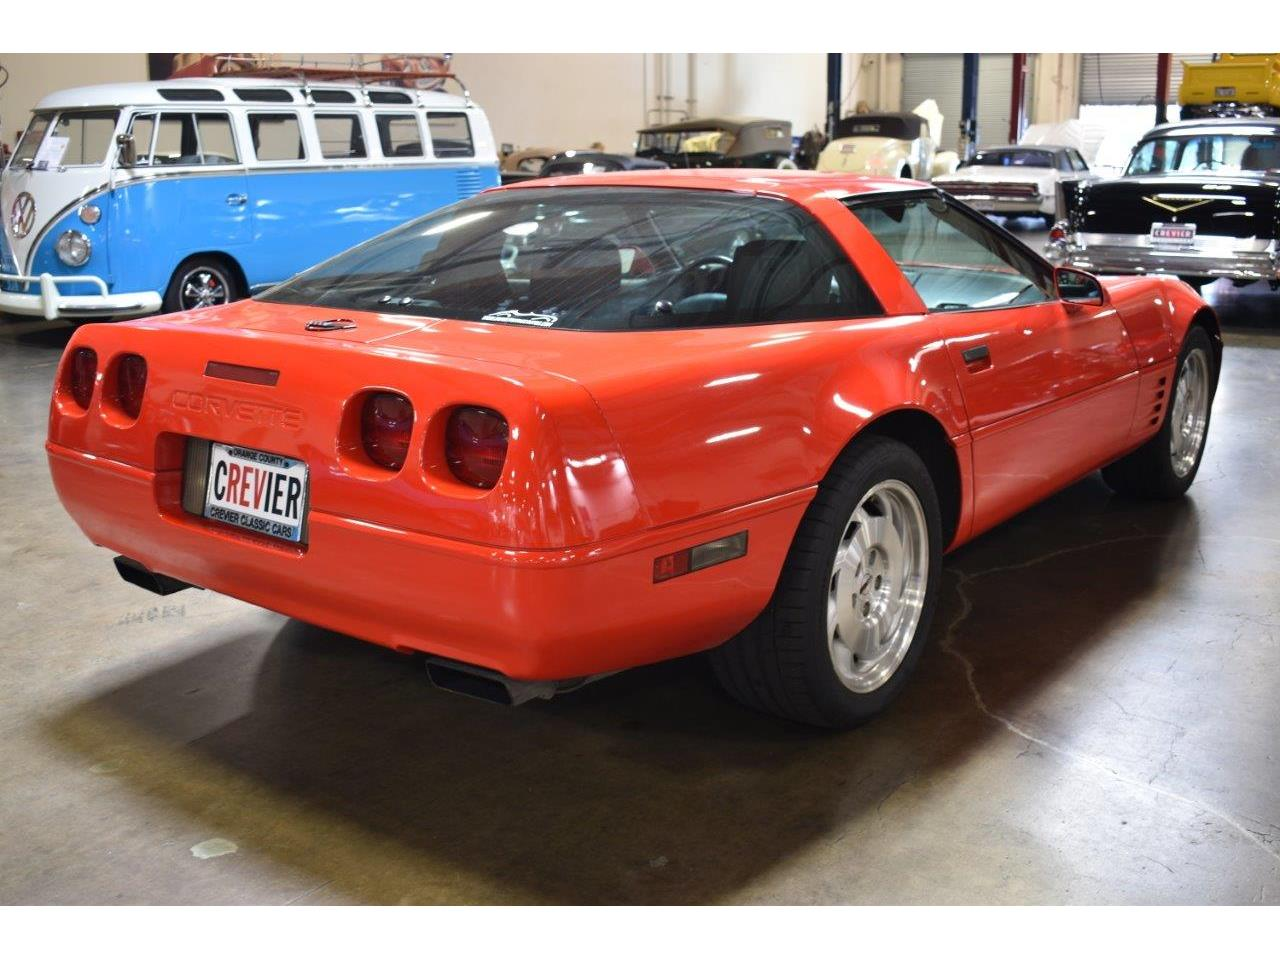 1993 Chevrolet Corvette (CC-1320590) for sale in Costa Mesa, California